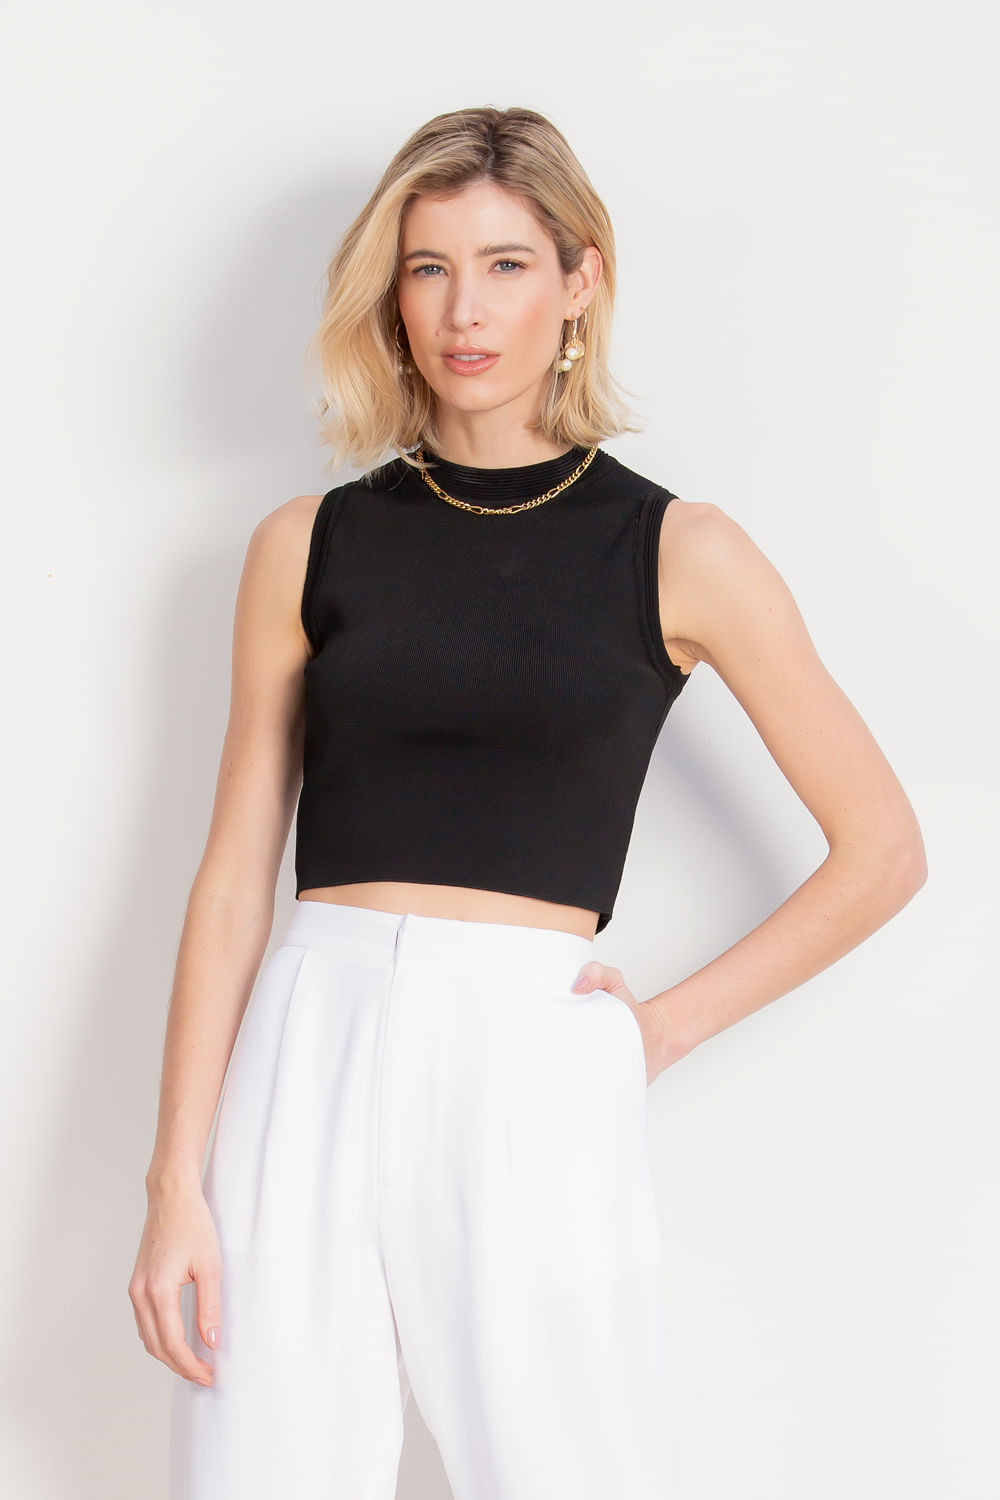 Cropped-Isis-Ref-6212-10-